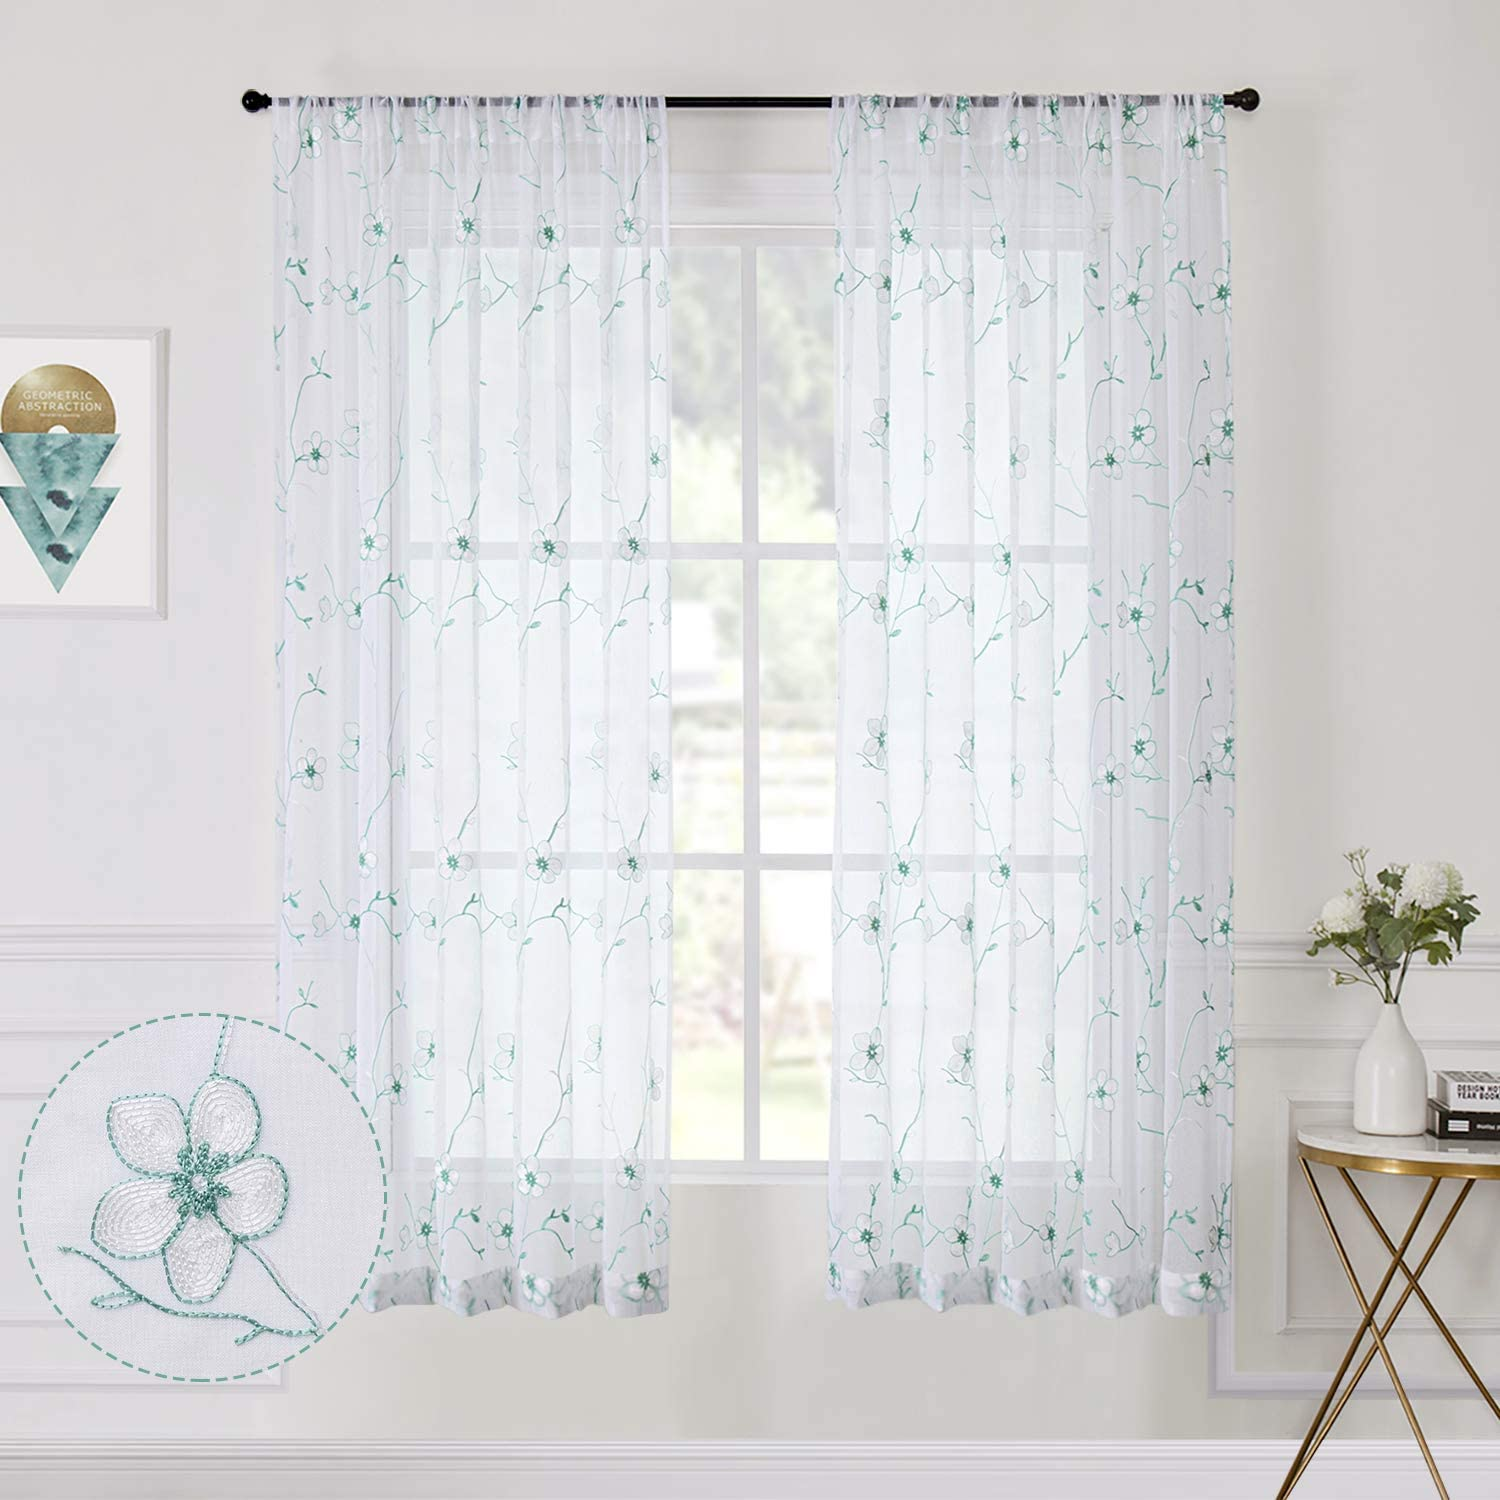 Amazon Com Tollpiz Flower Short Sheer Curtains Aqua Blue White Blossom Embroidery Bedroom Curtain Rod Pocket Voile Embroidered Floral Curtains For Living Room 54 X 45 Inches Long Set Of 2 Panels Home